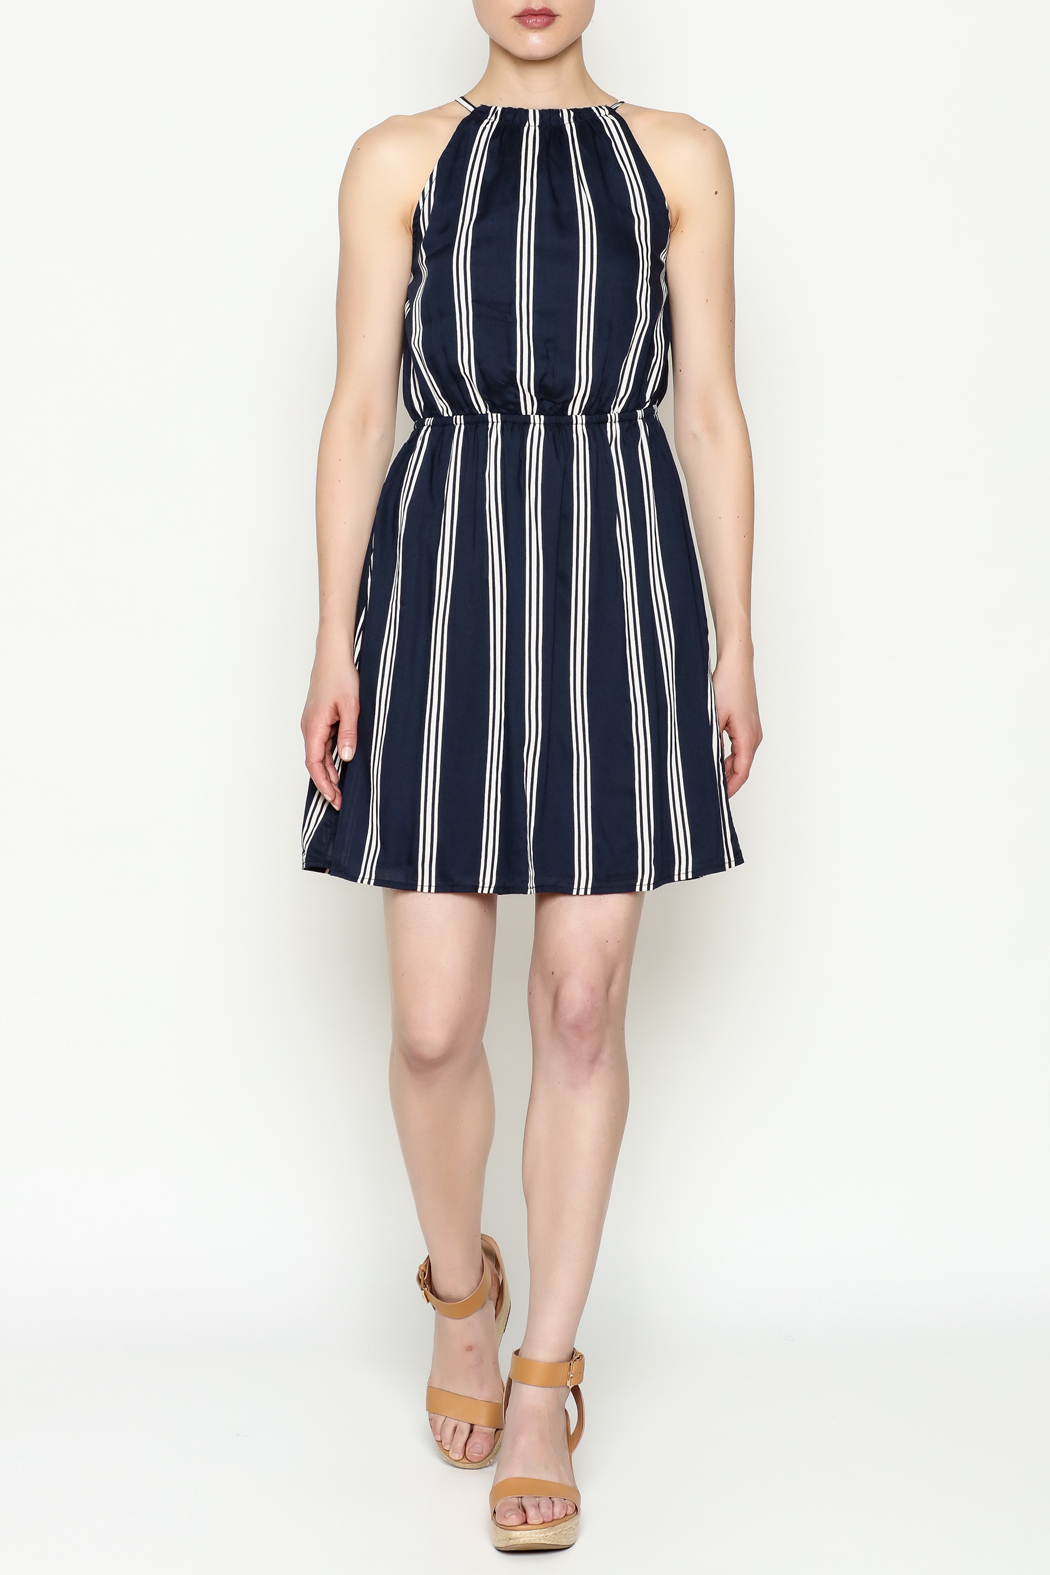 Olive & Oak Navy Stripe Dress - Side Cropped Image